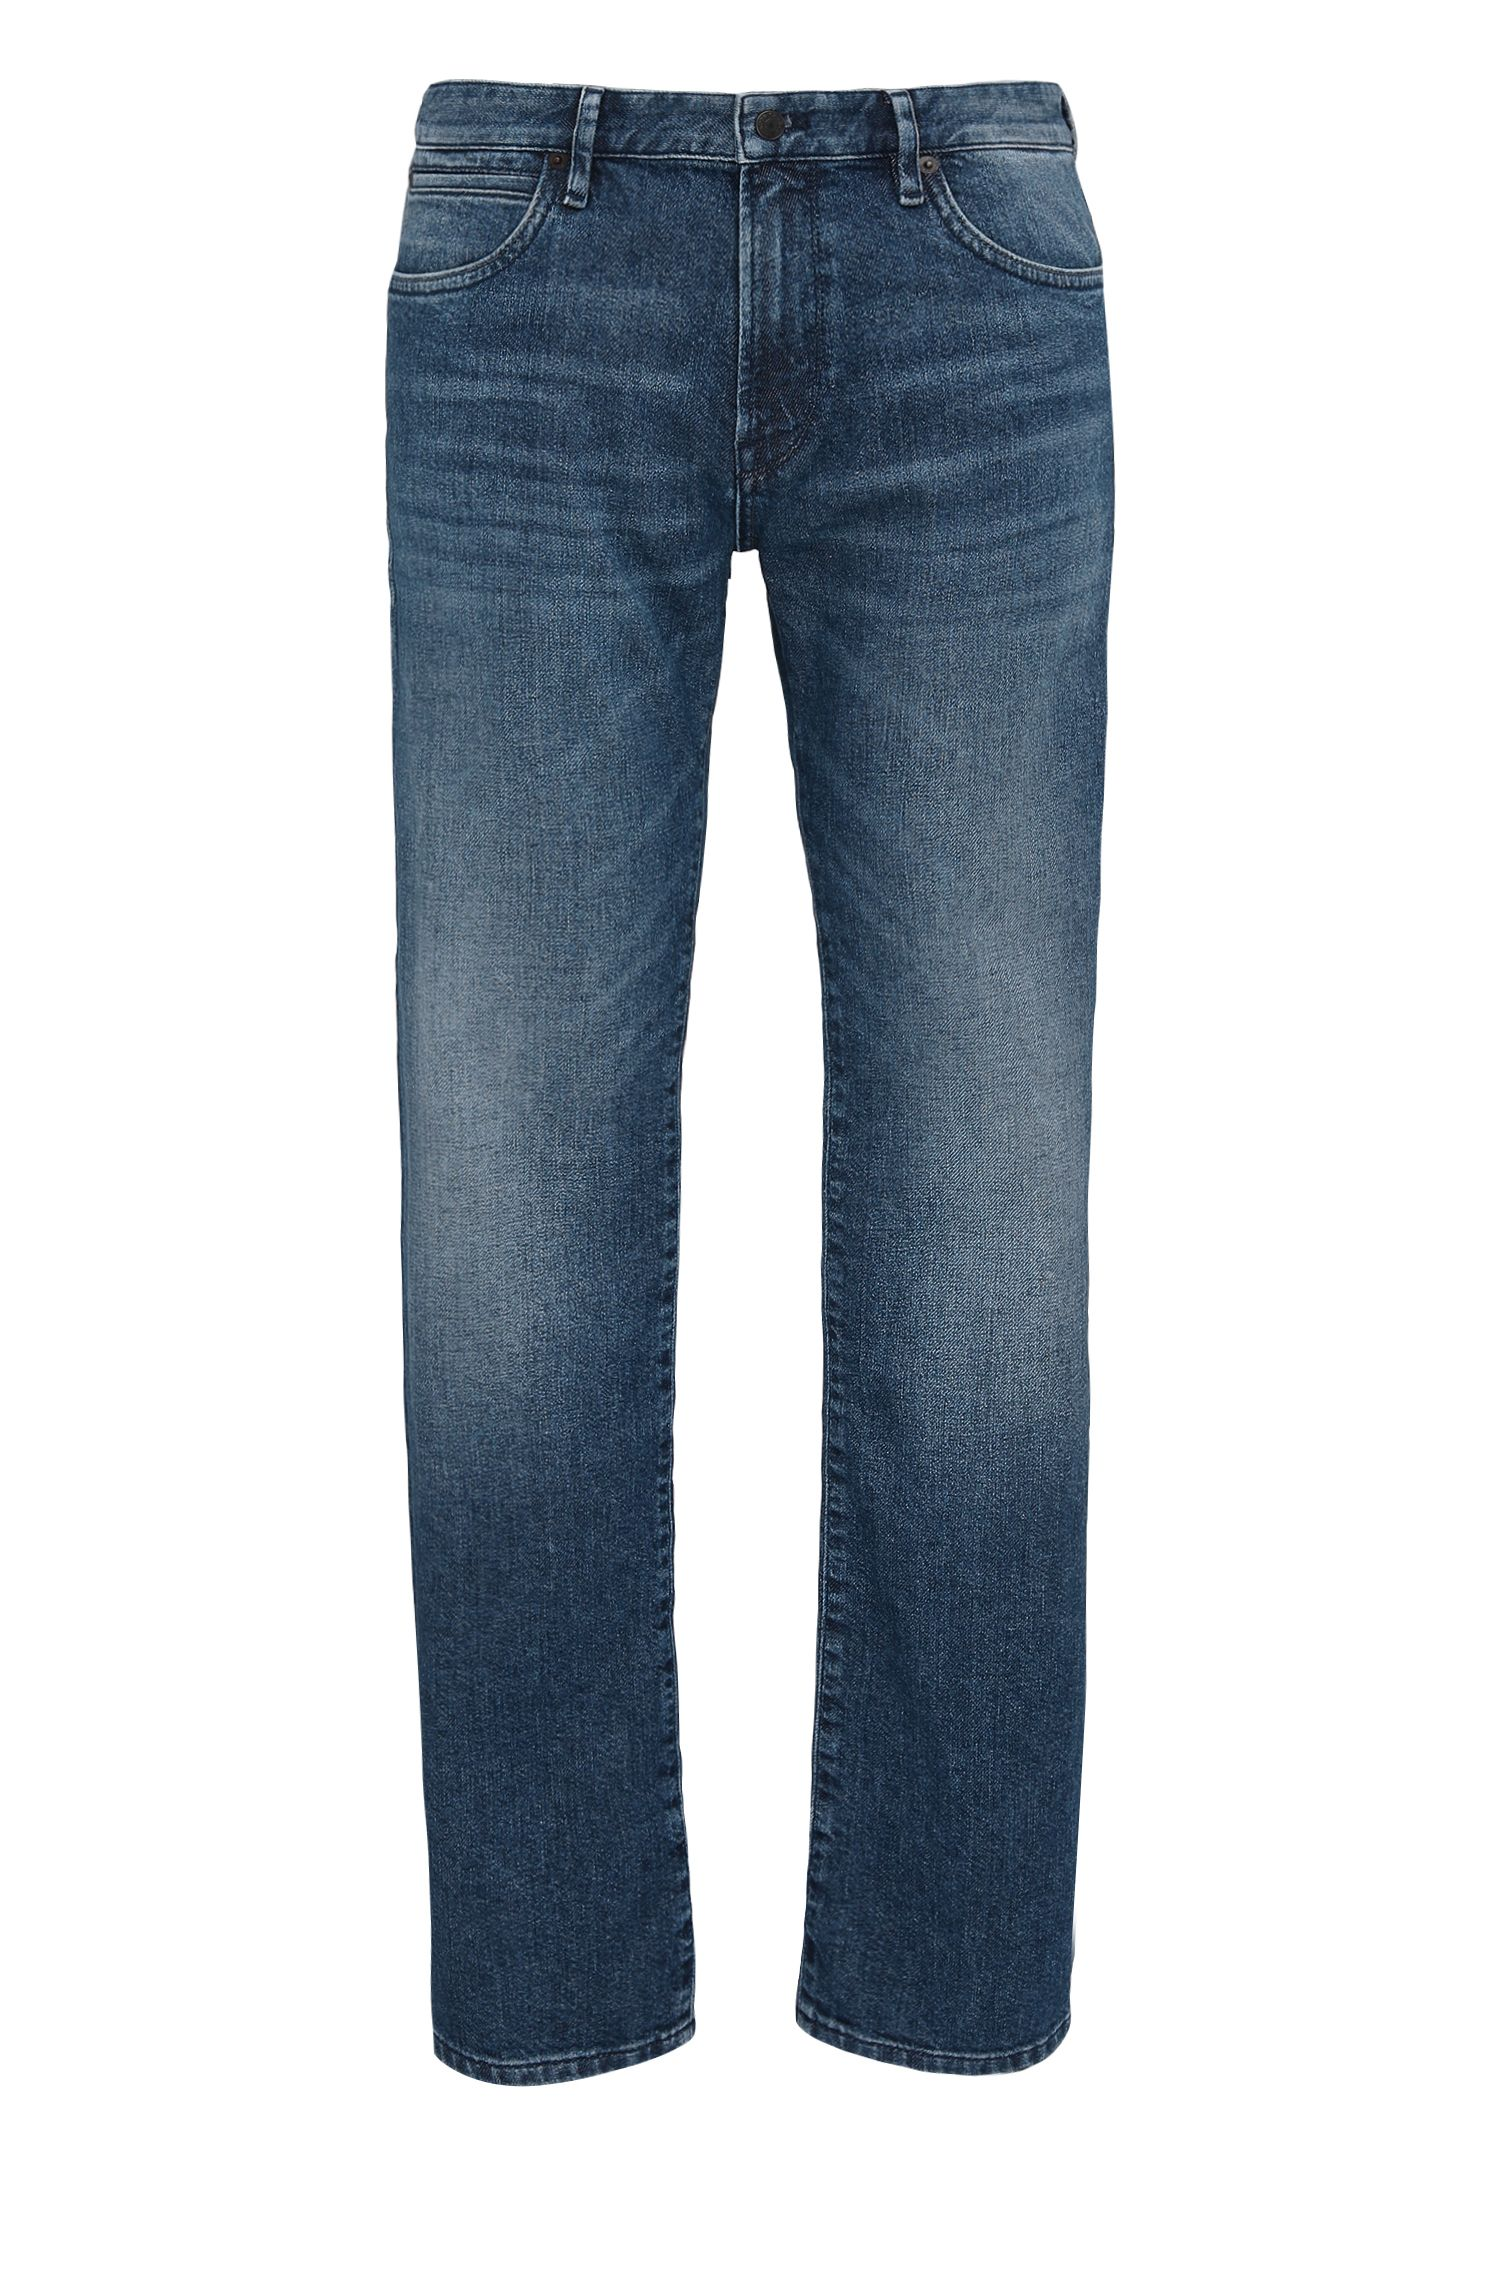 Jeans regular fit in misto cotone di medio peso